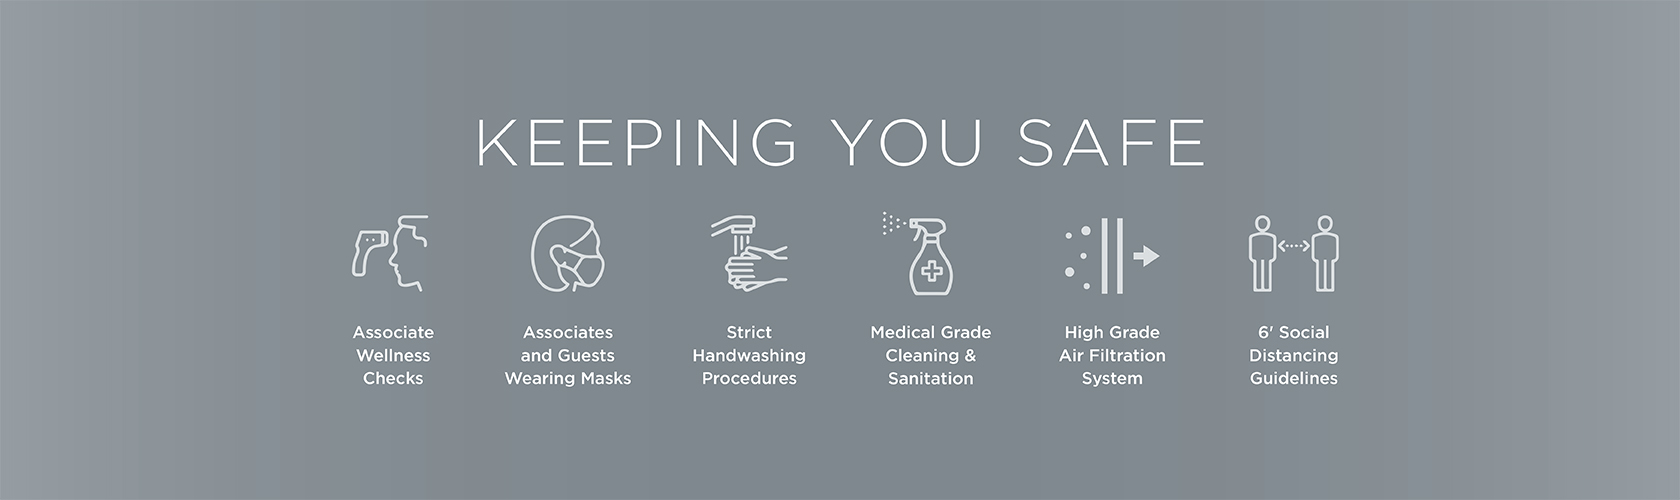 Keeping you safe with associate wellness checks, associates and guests wearing masks, strict handwashing procedures, medical grade cleaning & sanitation, high grade air filtration system and 6' social distancing guidelines.